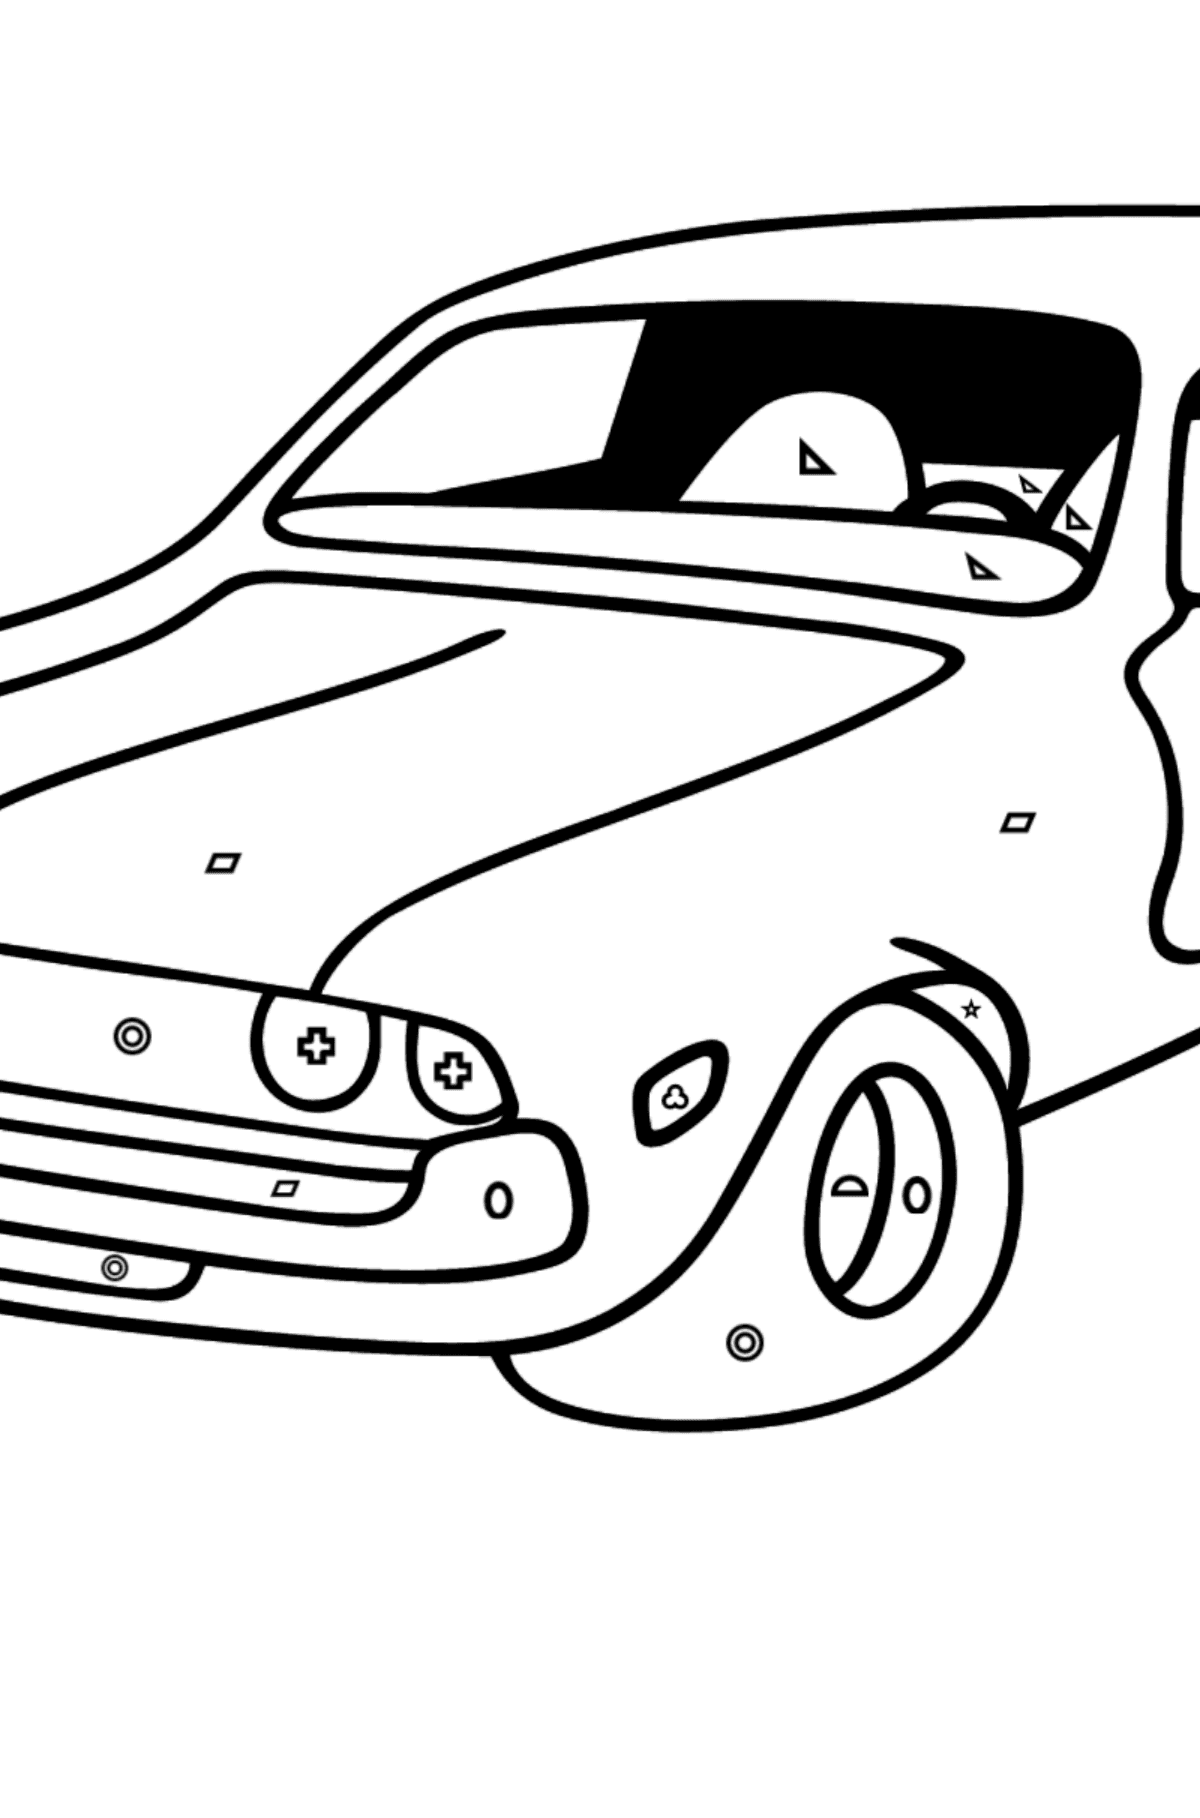 Chevrolet gray car coloring page - Coloring by Geometric Shapes for Kids